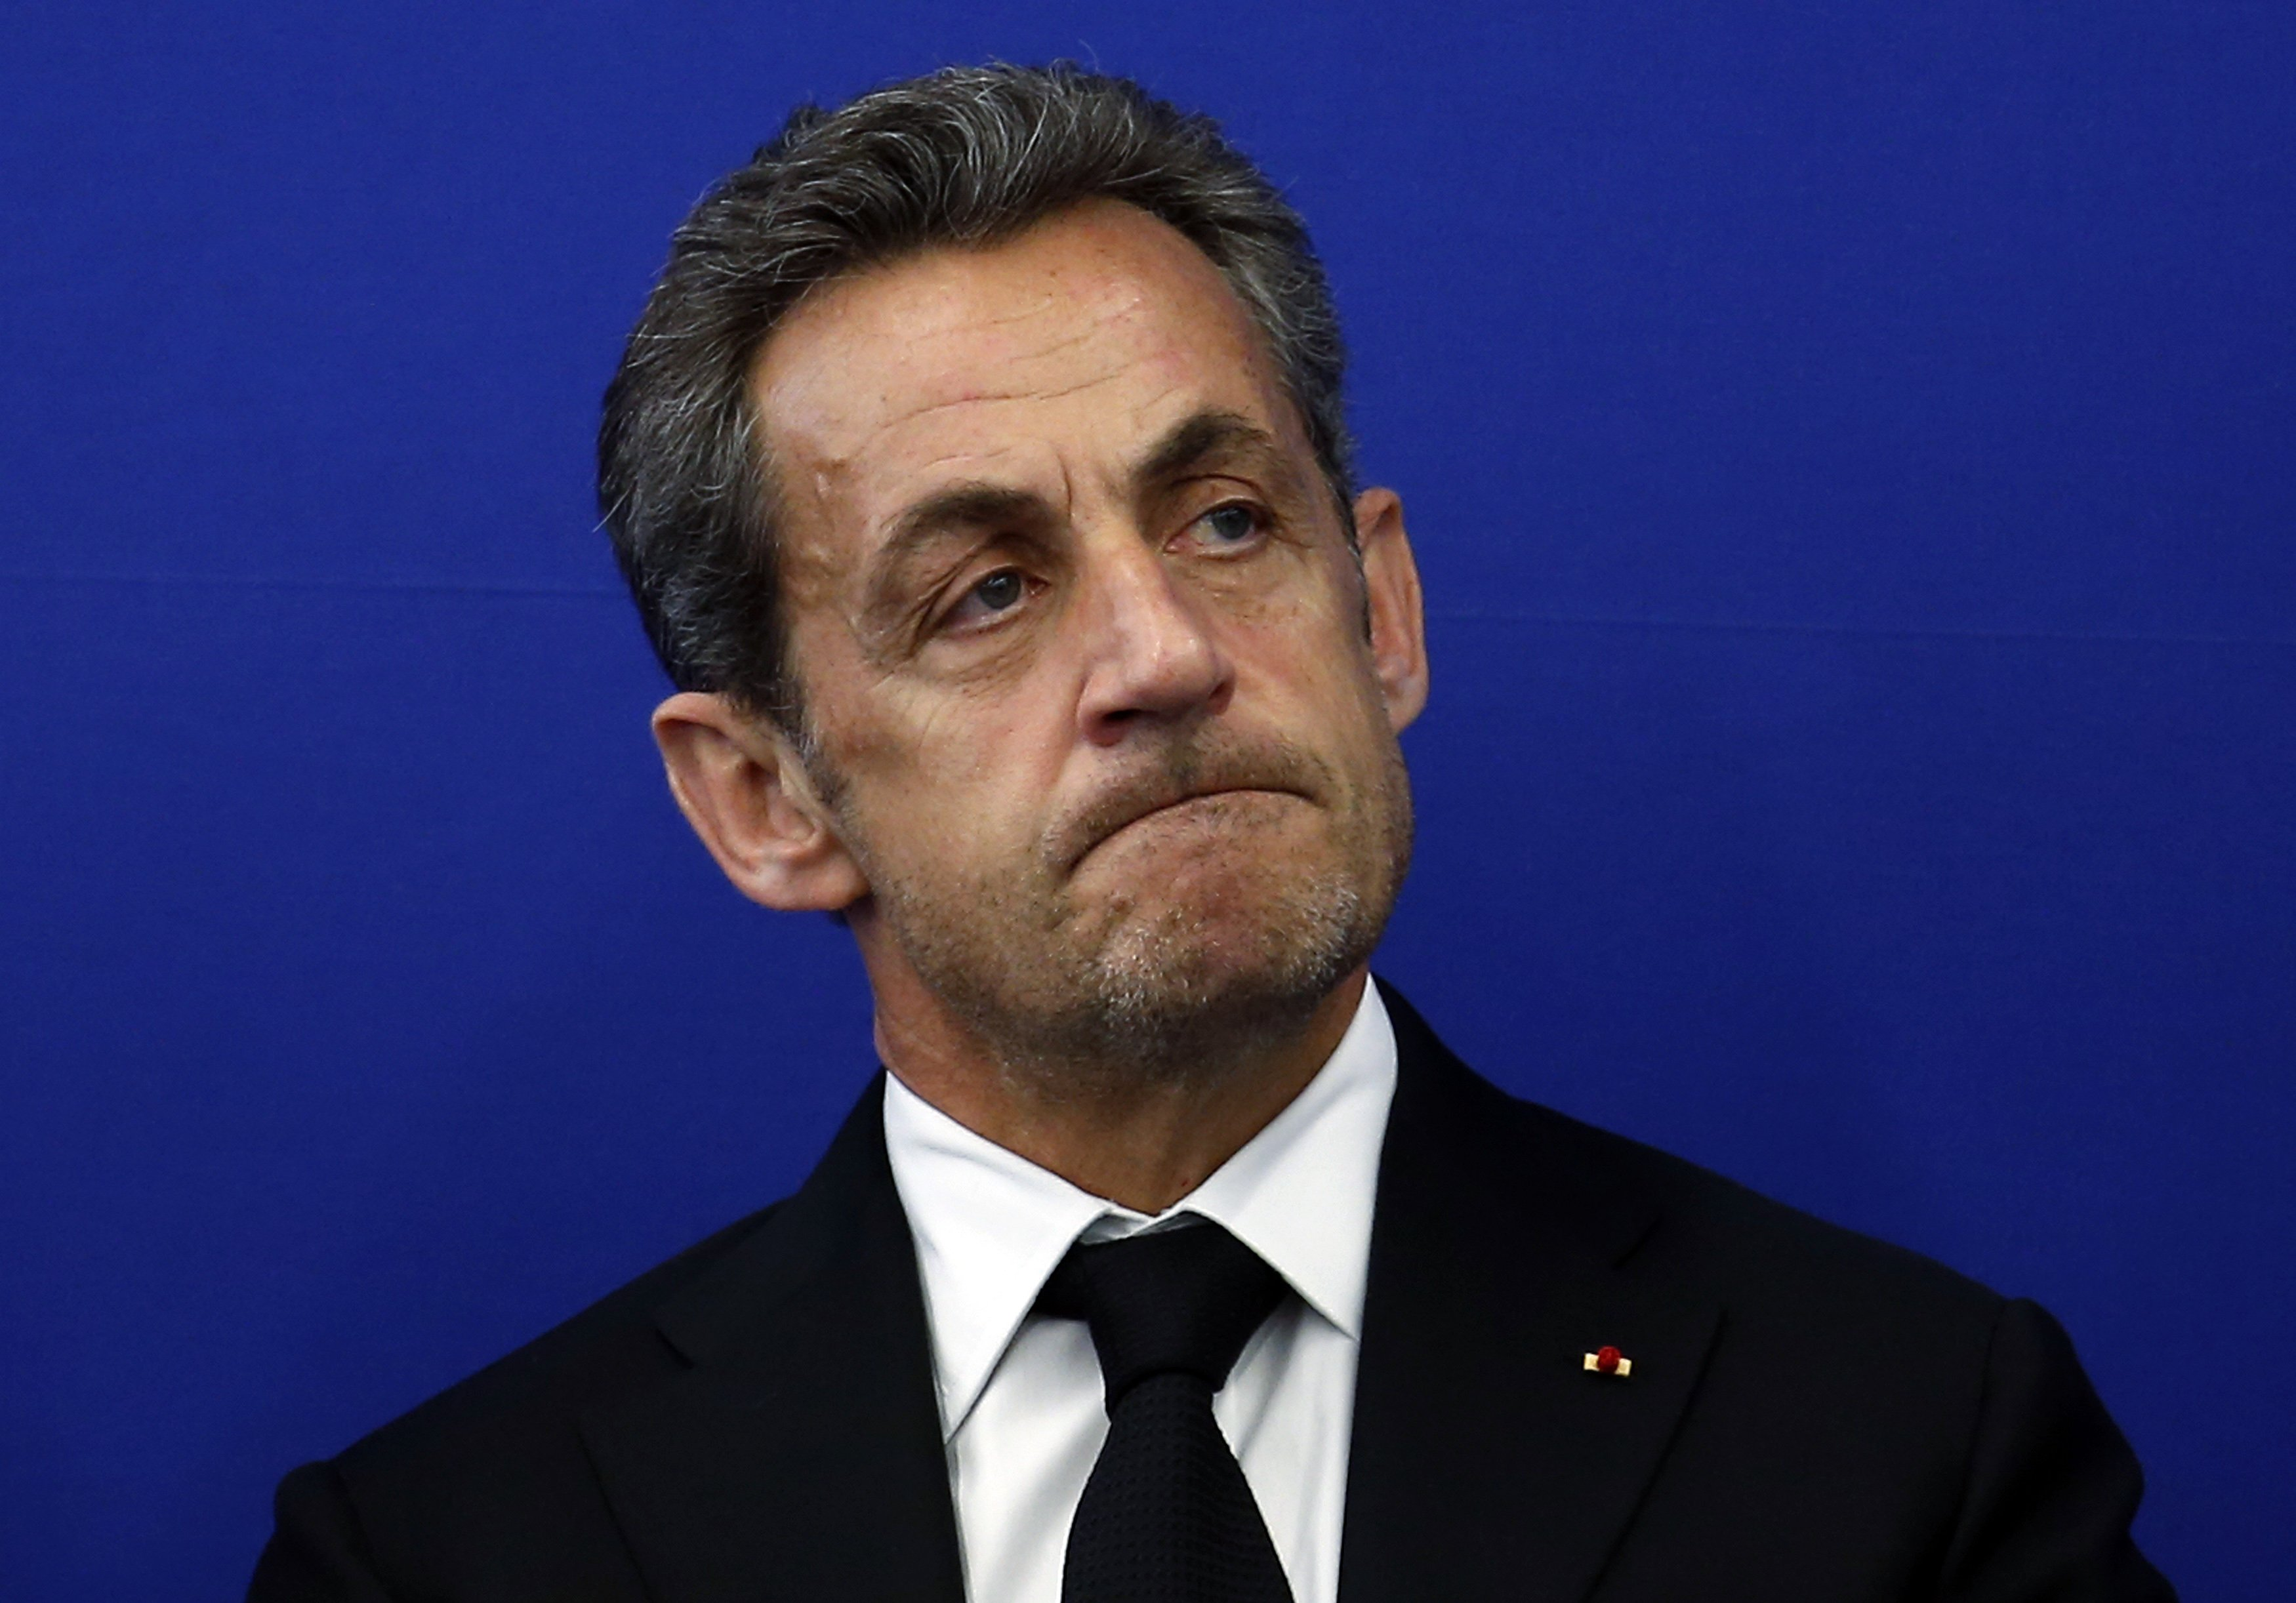 sarkozy - photo #17